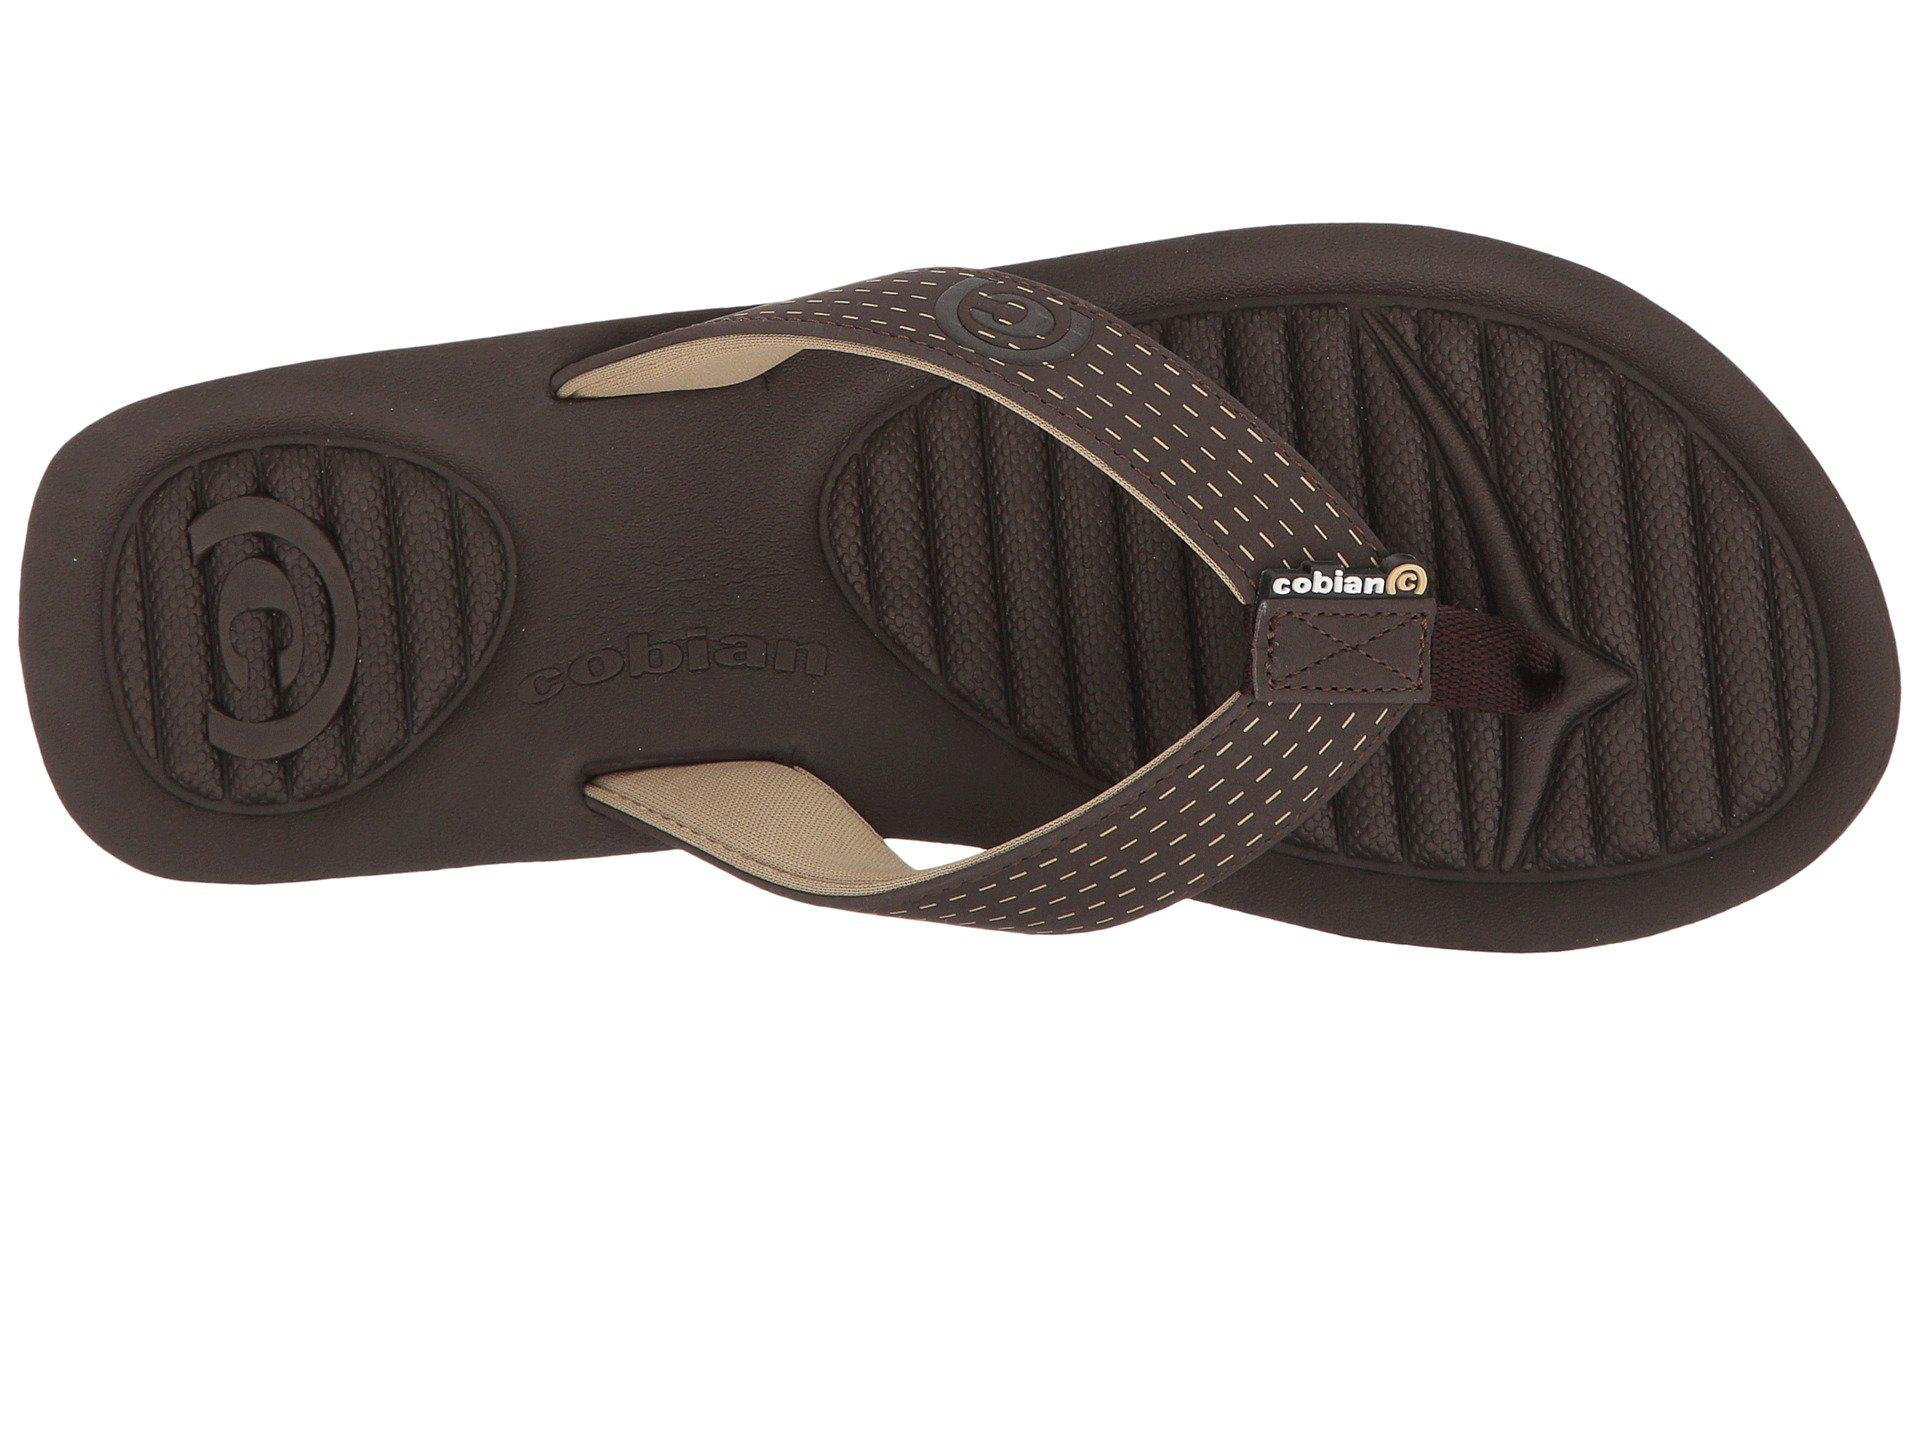 c5f405a86 Lyst - Cobian Hydro Pod in Brown for Men - Save 62.96296296296296%